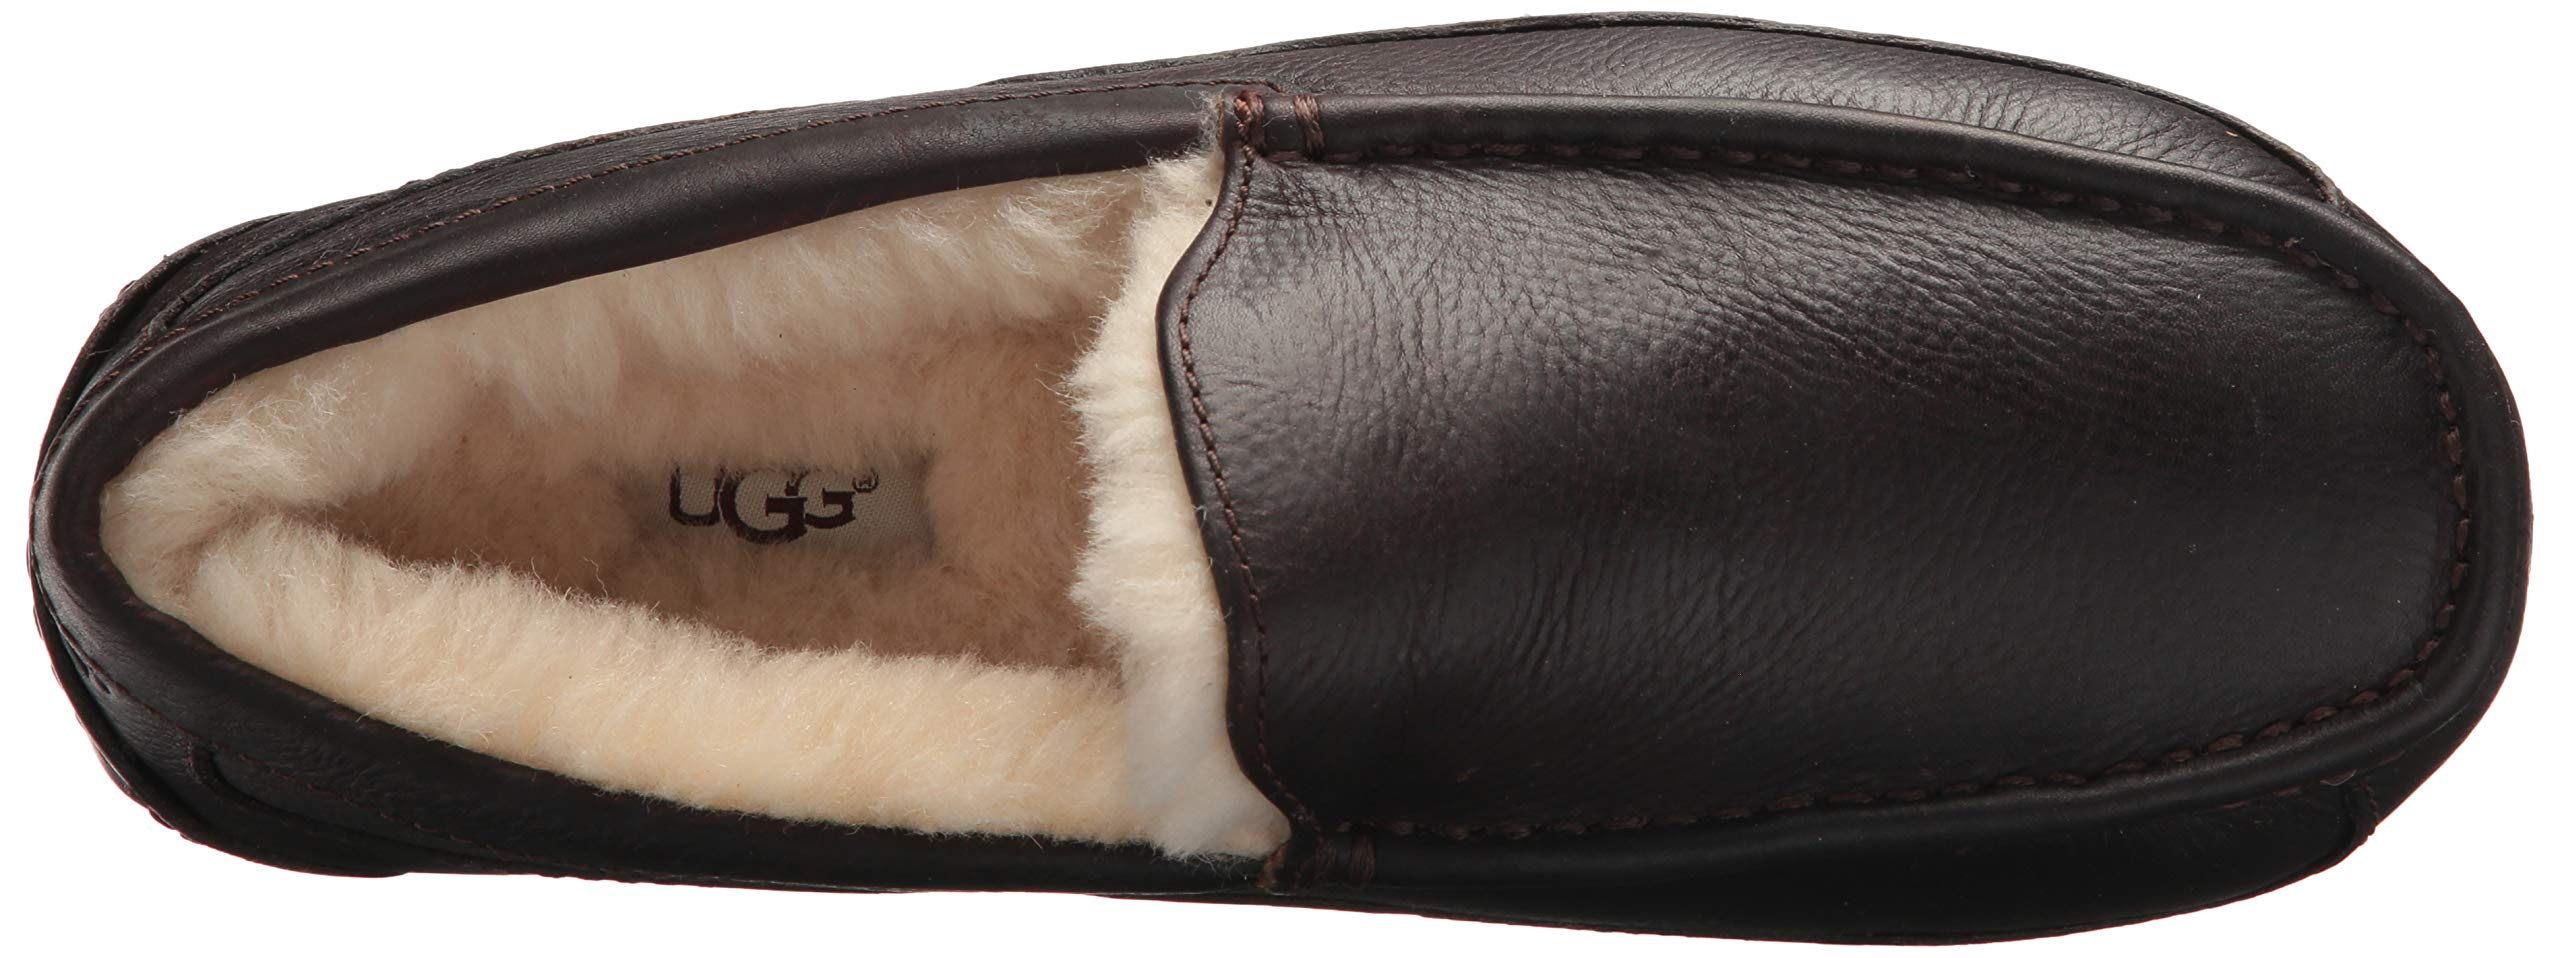 UGG Men's Ascot Slipper, China Tea Leather, 15 M US by UGG (Image #9)